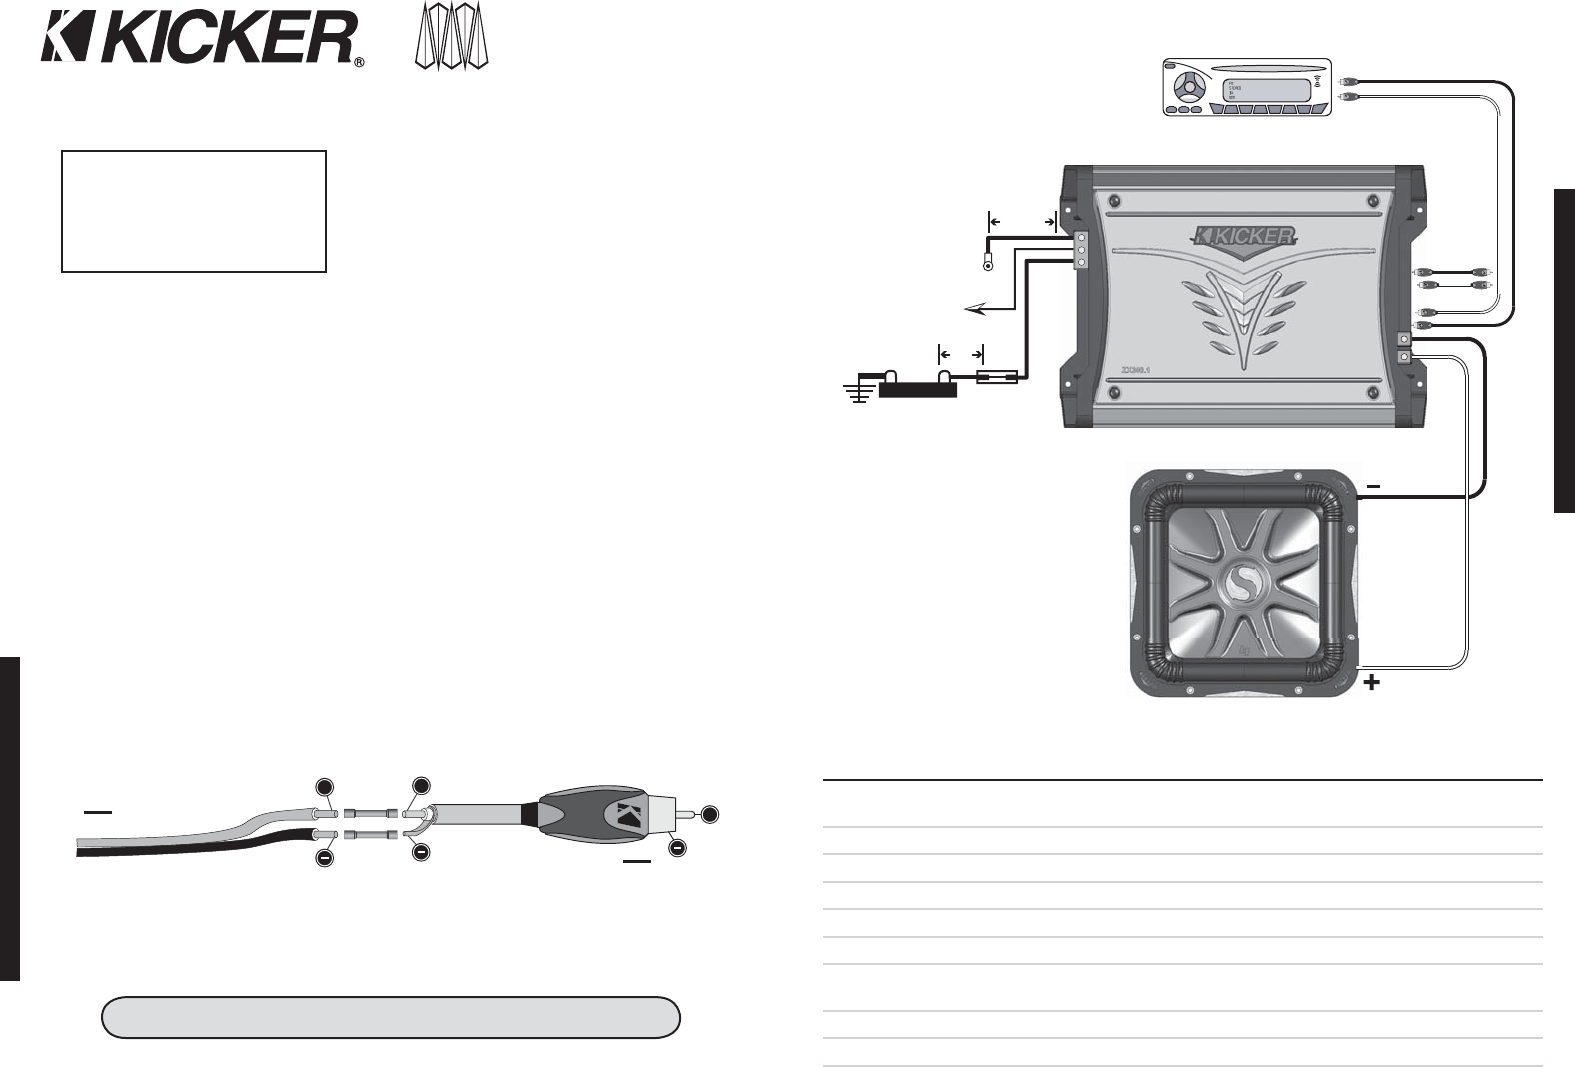 cbb5068e c461 cf14 b527 a350f3c723e2 bg2 page 2 of kicker stereo amplifier zx300 1 user guide kicker l5 15 wiring diagram at n-0.co